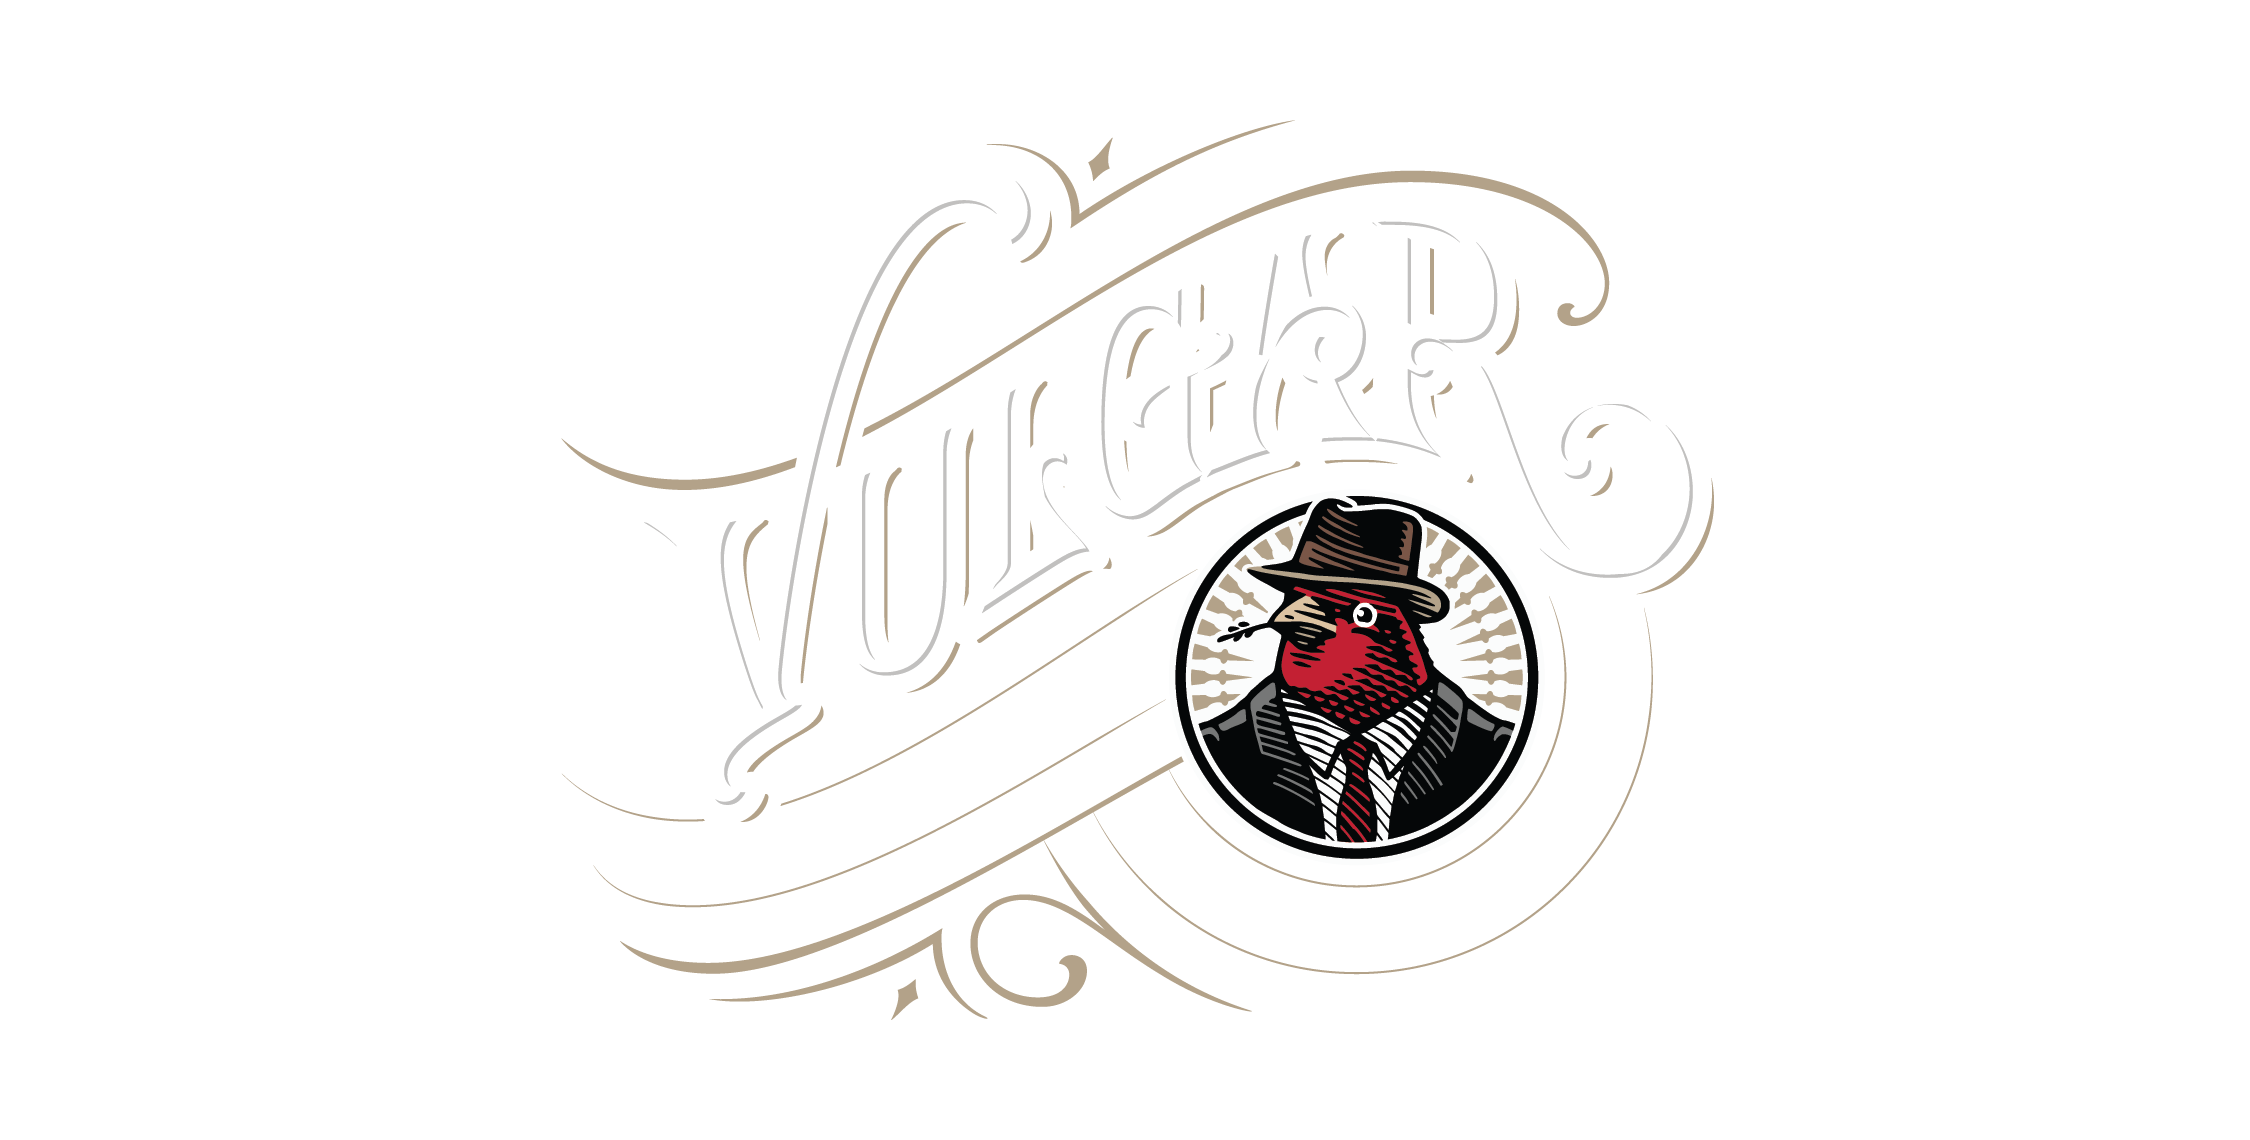 https://vulgarbrewing.com/wp-content/uploads/2020/09/Full-Header-Logo-01.png